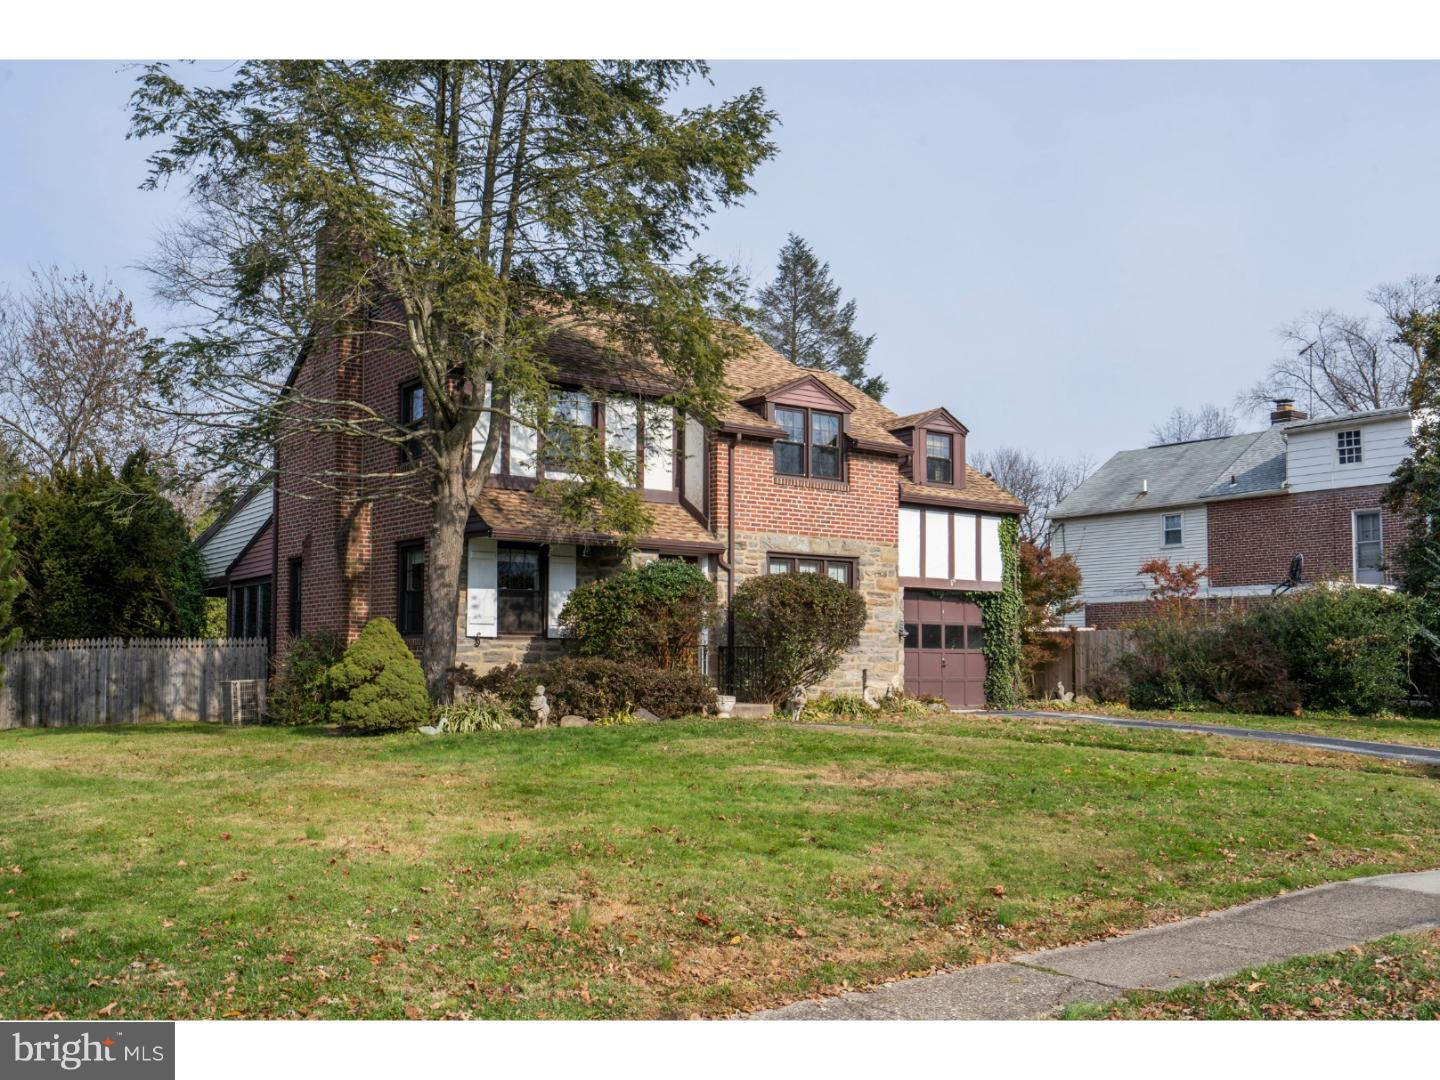 365 FAIRVIEW ROAD, SPRINGFIELD, PA 19064